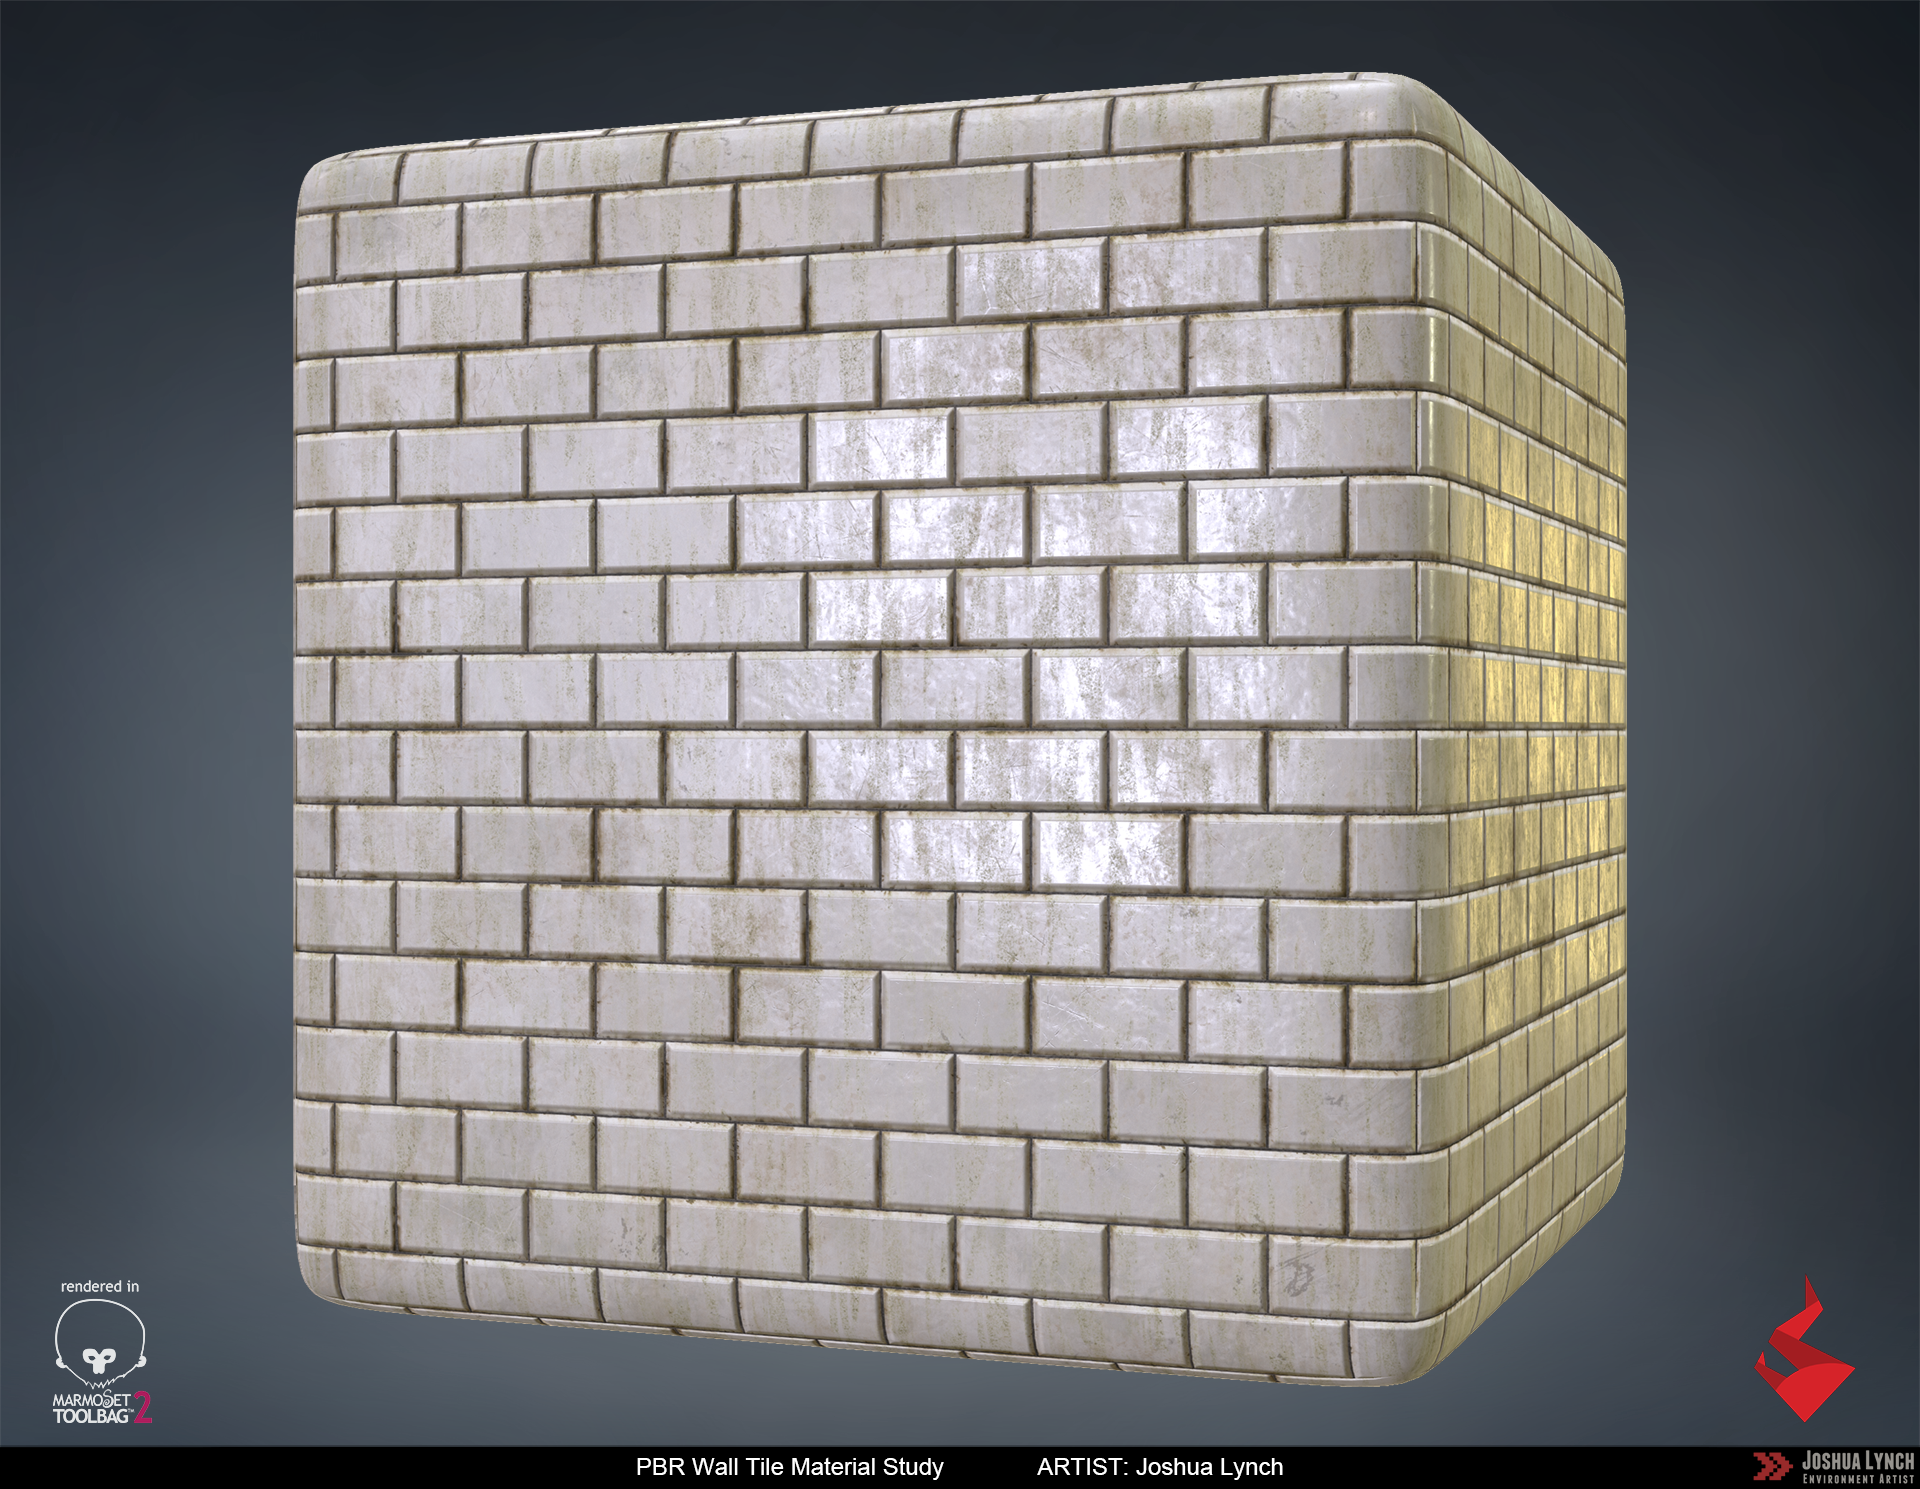 Subway_Wall_Tile_Cube_Bevel_Layout_Comp_Josh_Lynch.png